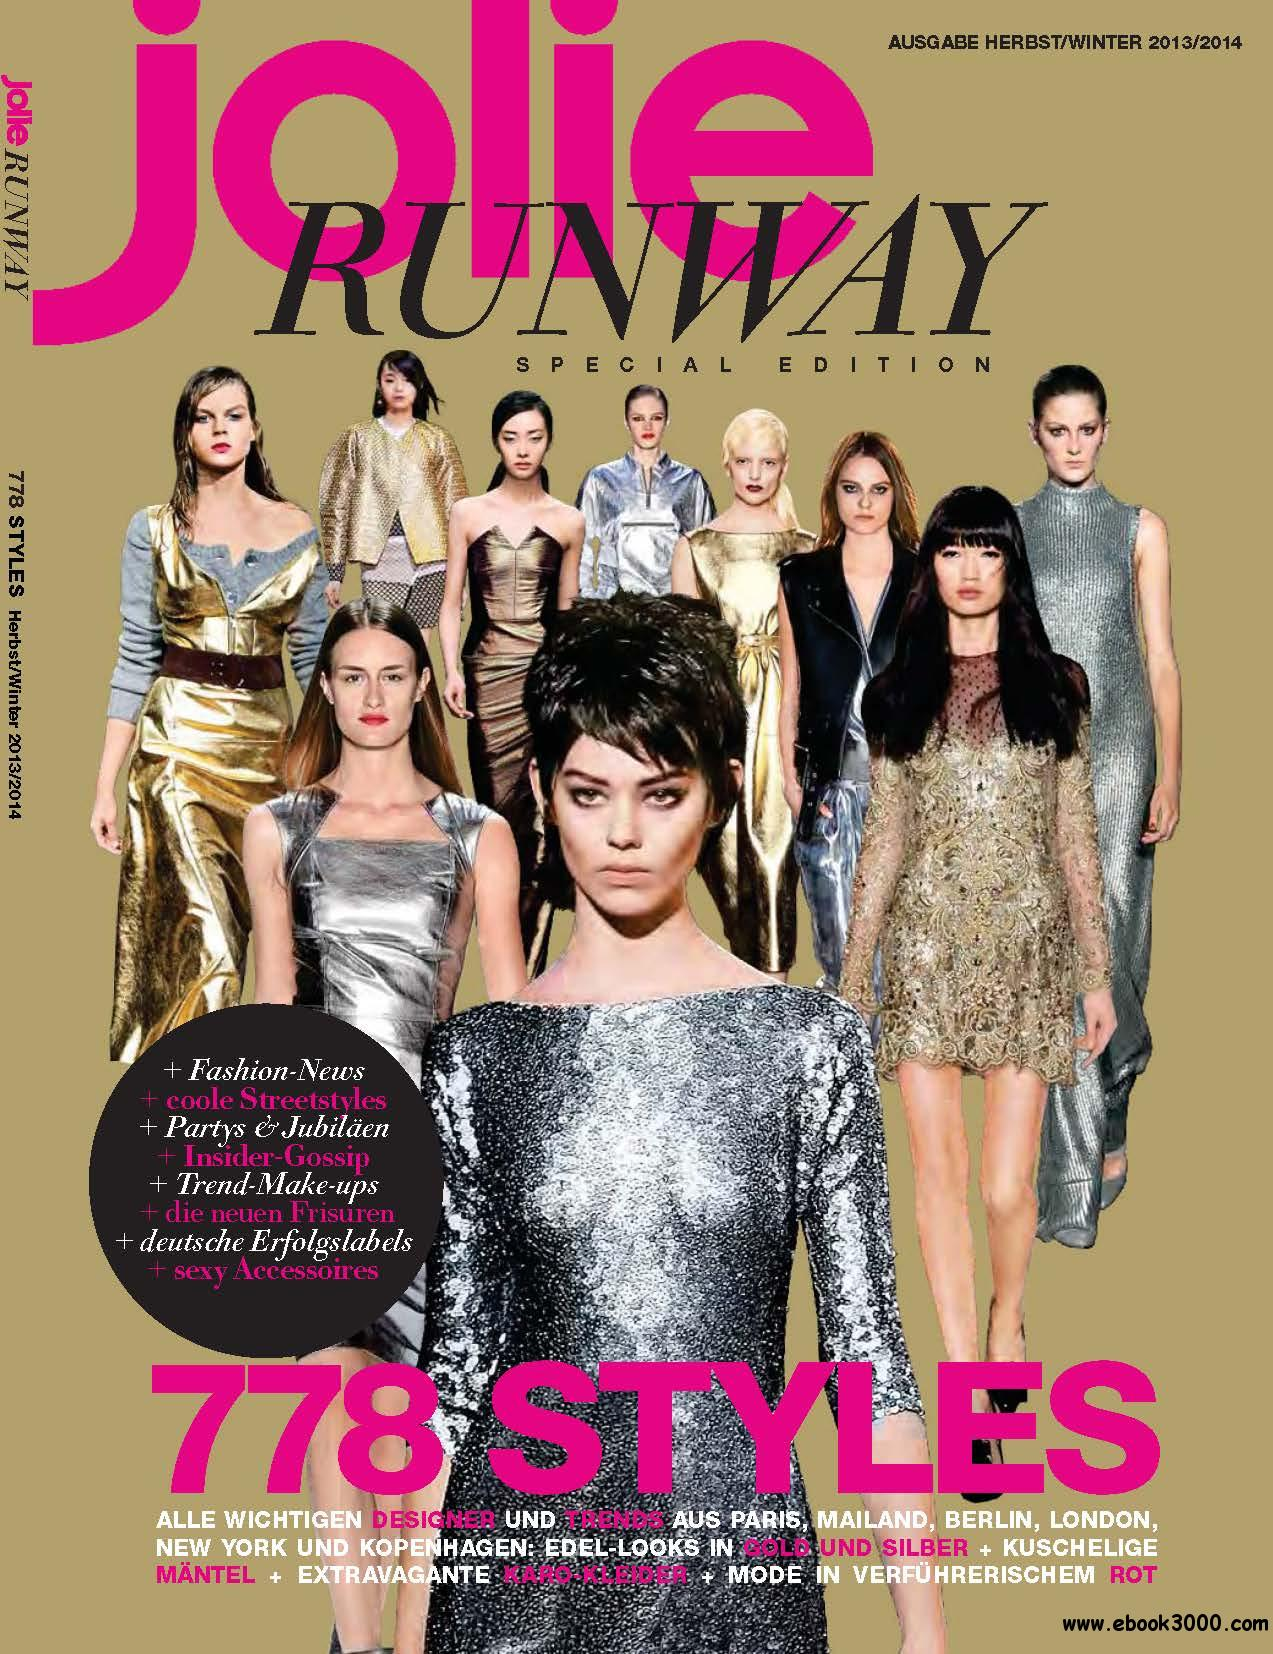 Jolie Special: Runway Herbst/Winter 2013/2014 free download